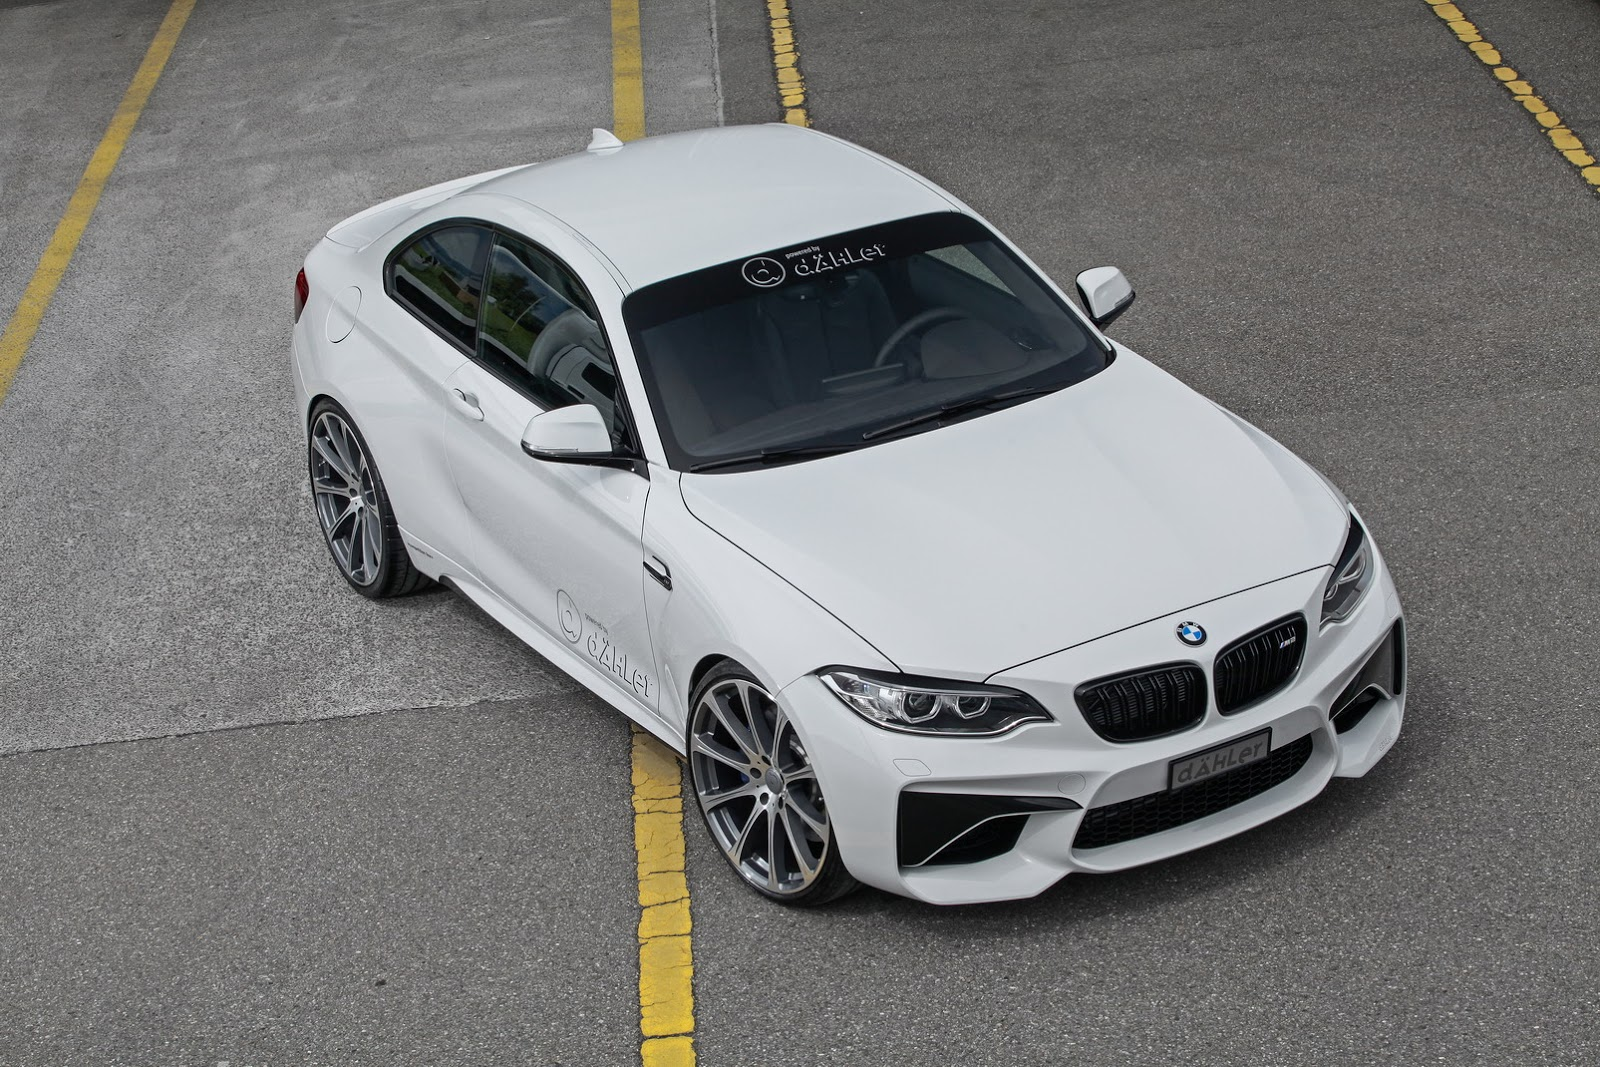 d hler drops bmw m4 s s55 into m2 coupe tunes it to 532hp. Black Bedroom Furniture Sets. Home Design Ideas